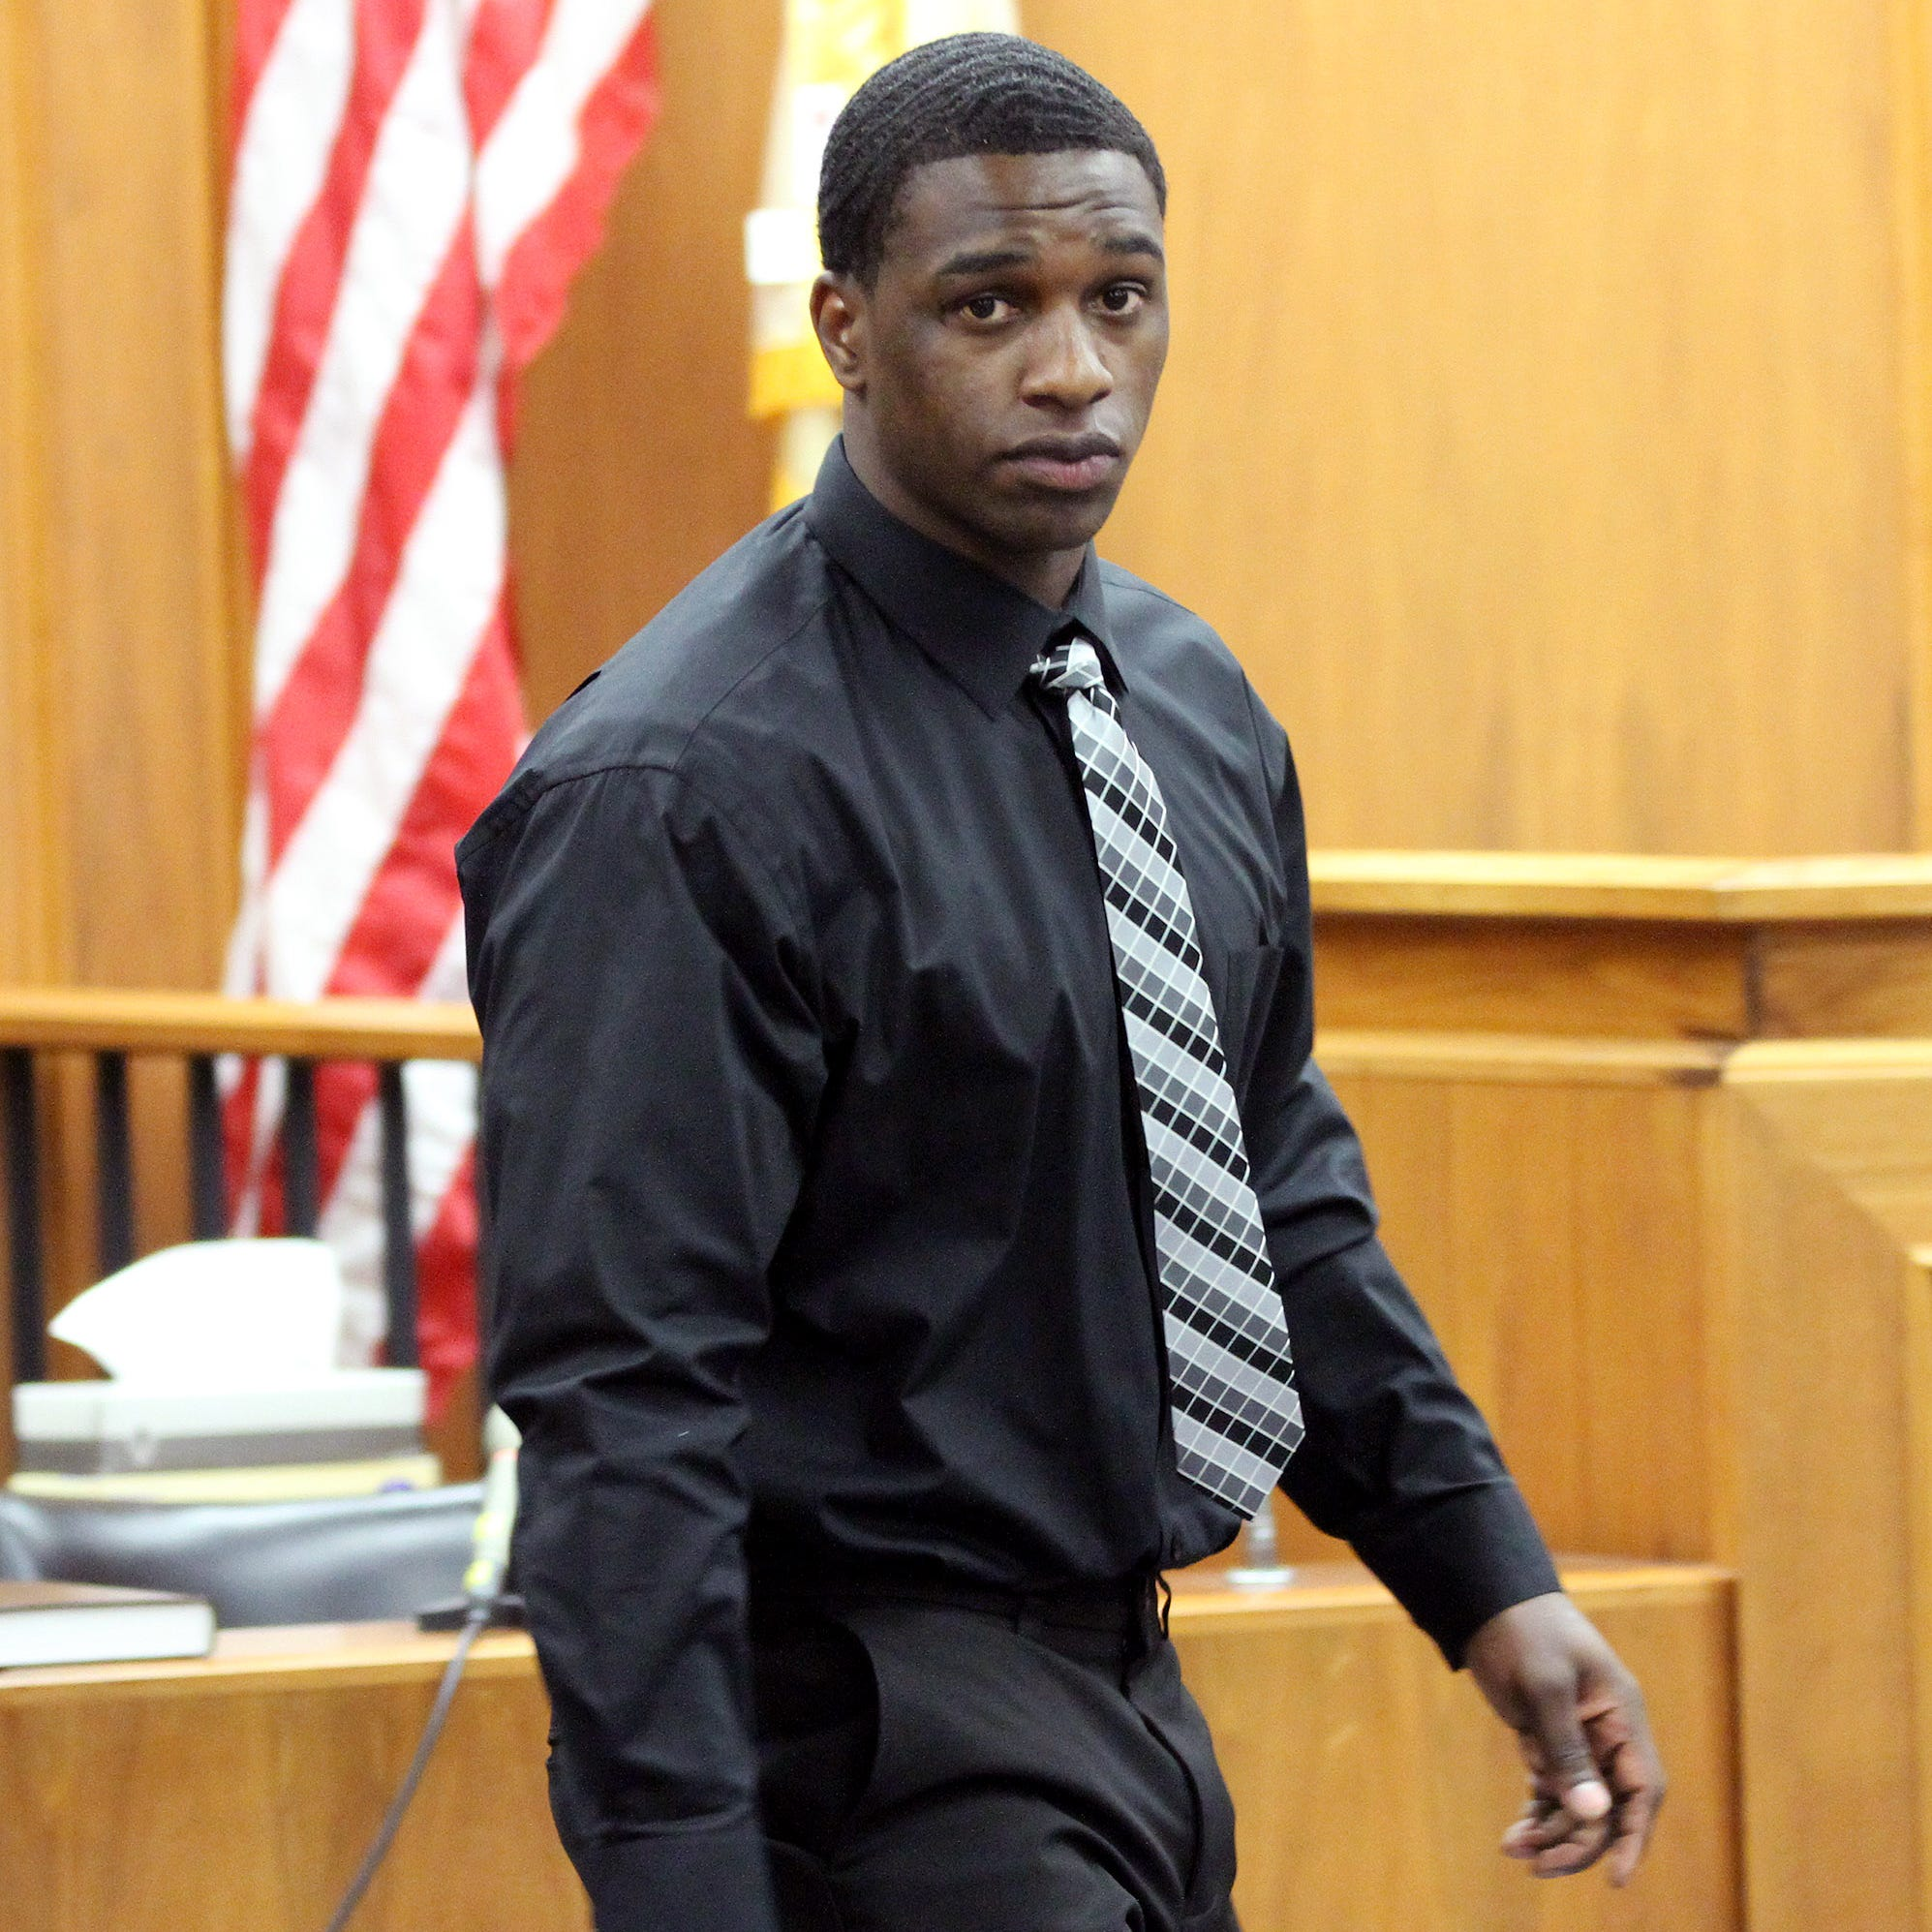 Asbury Park man guilty of trying to murder police officer